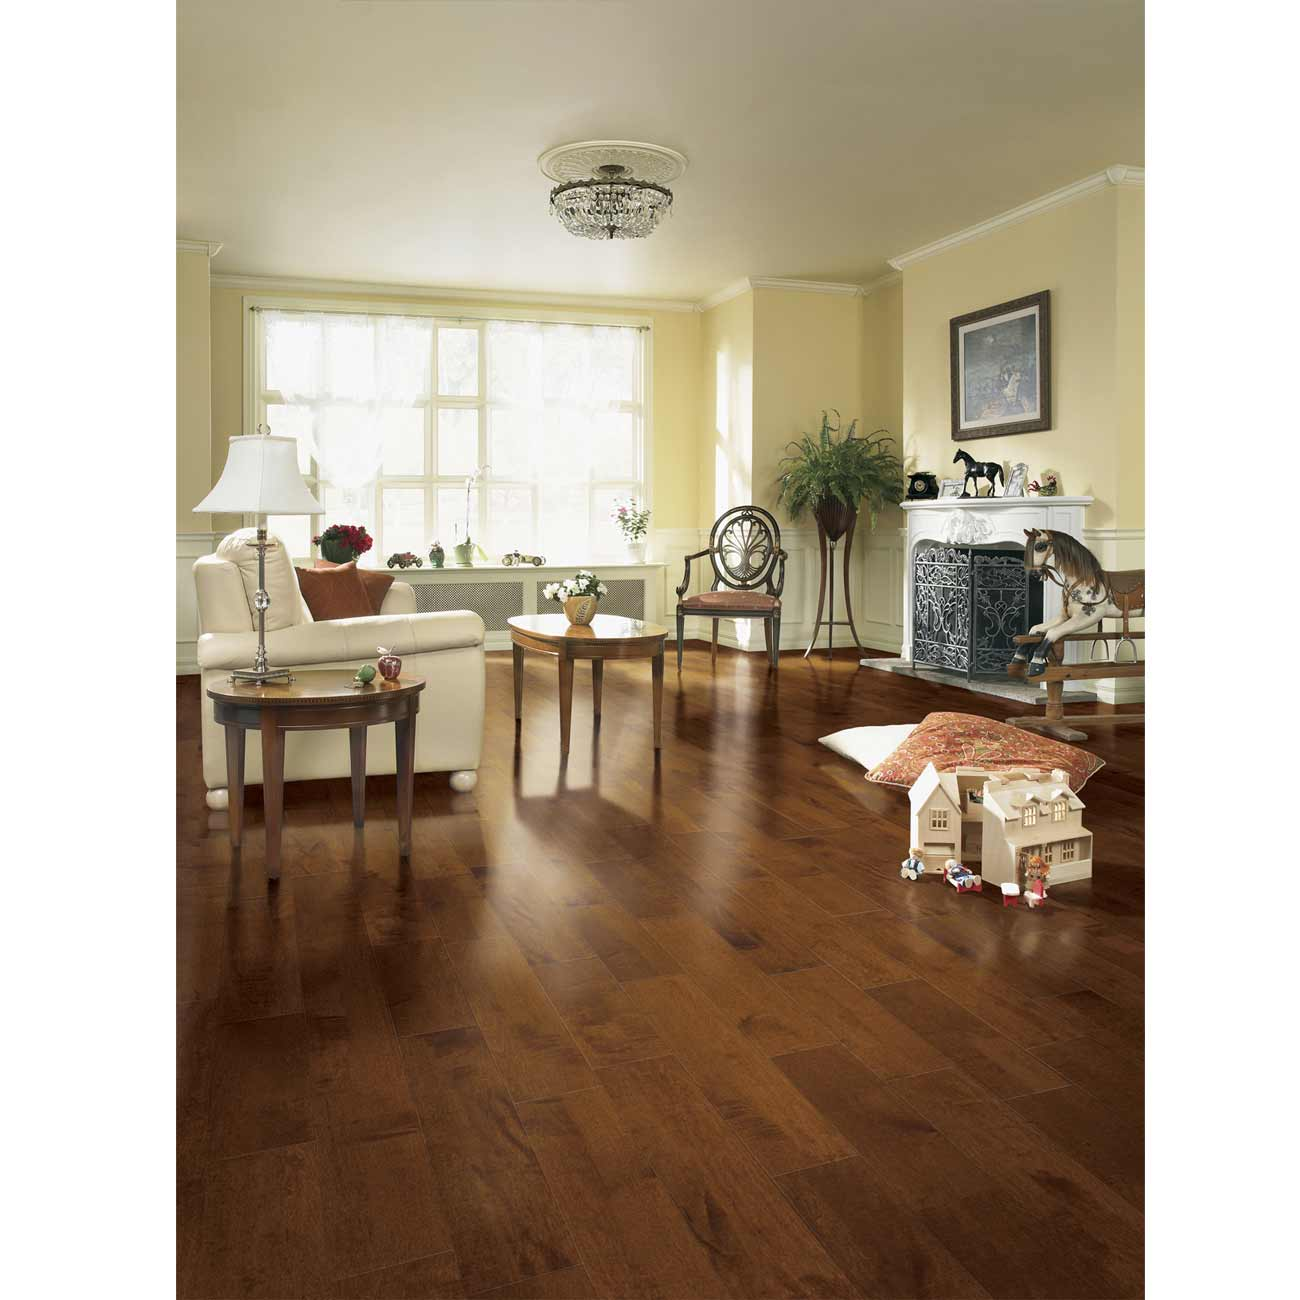 distinctive style wooden flooring from Lauzon